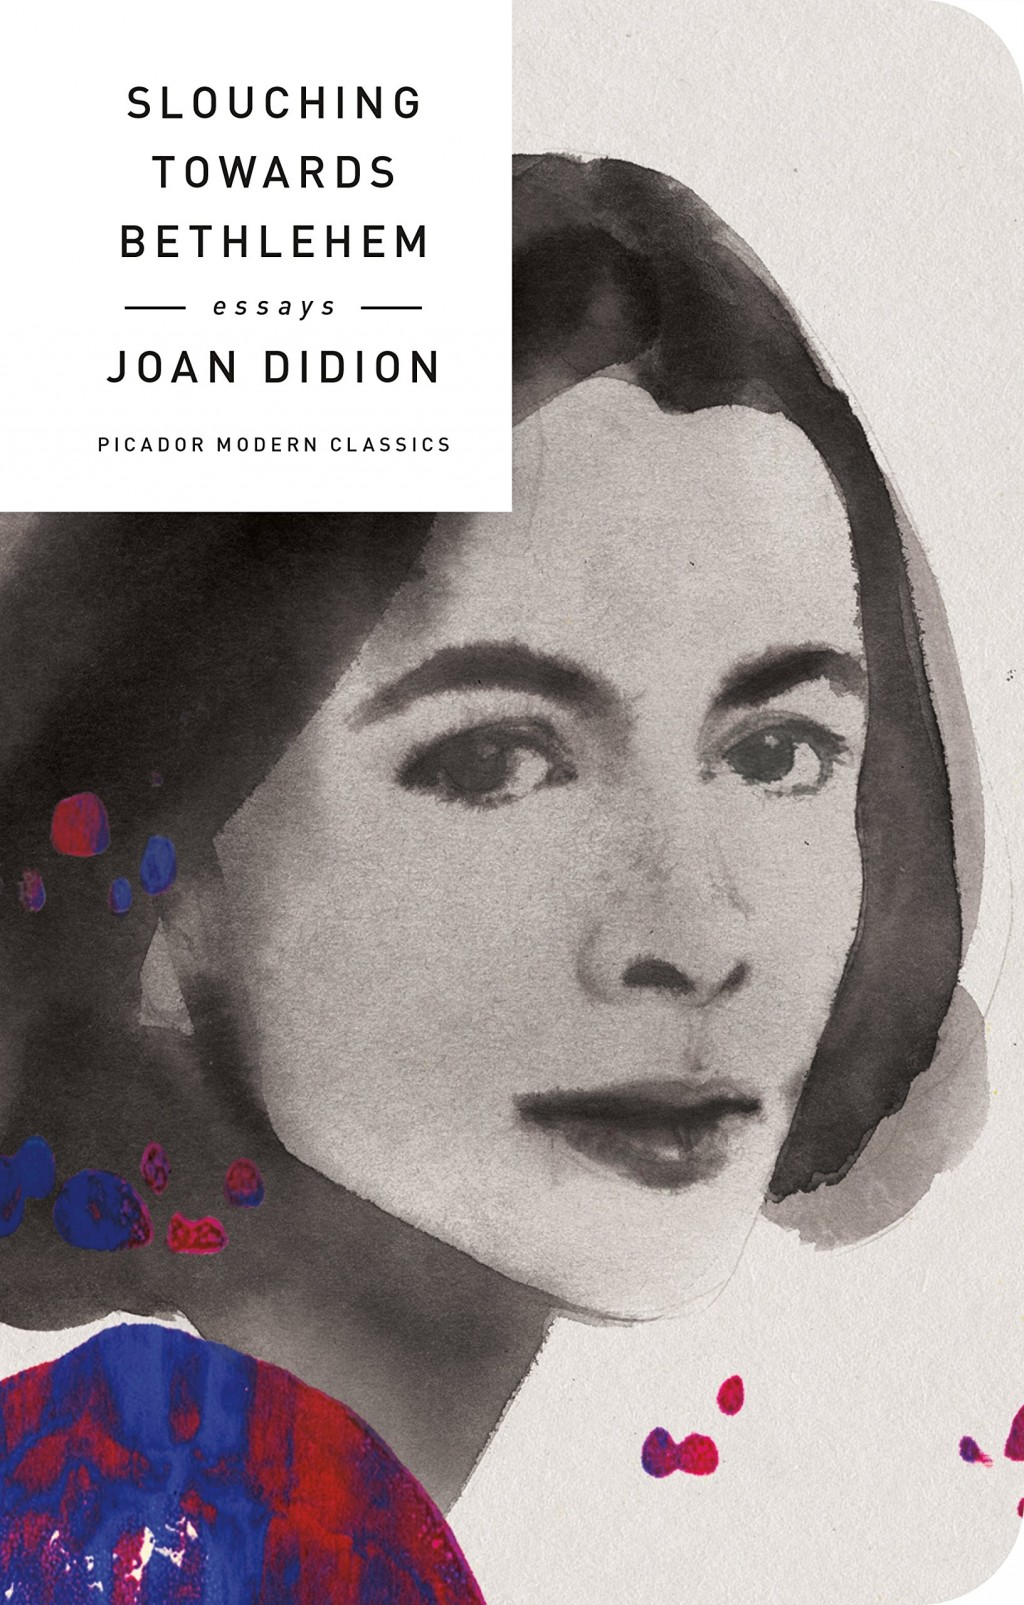 023 Slouching Towards Bethlehem Essay Example Joan Didion Singular Essays Collections On Santa Ana Winds Amazon Large